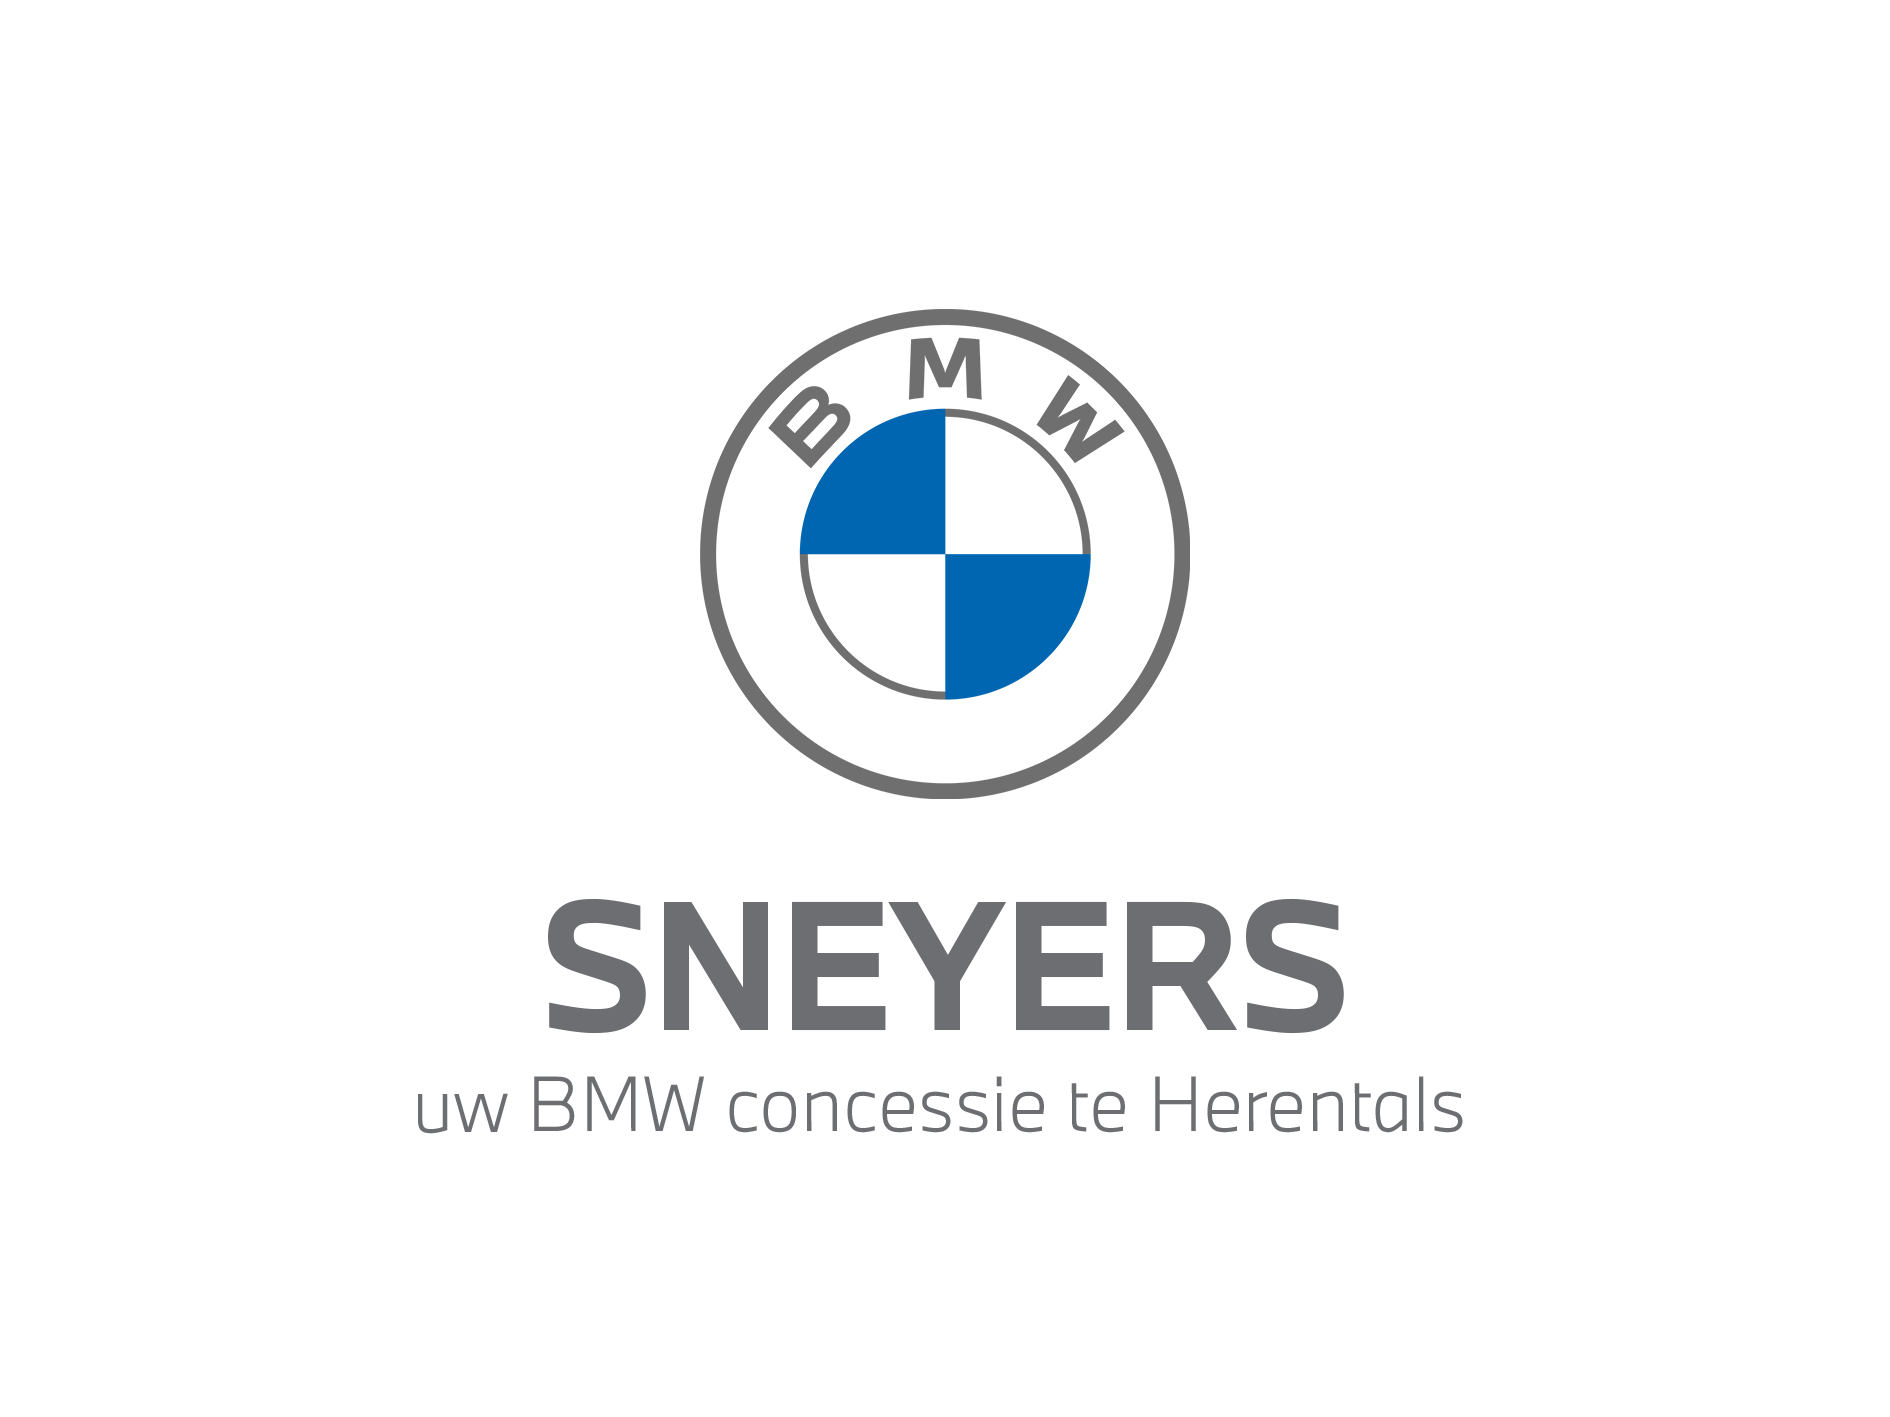 New logo Sneyers BMW Grey 2020